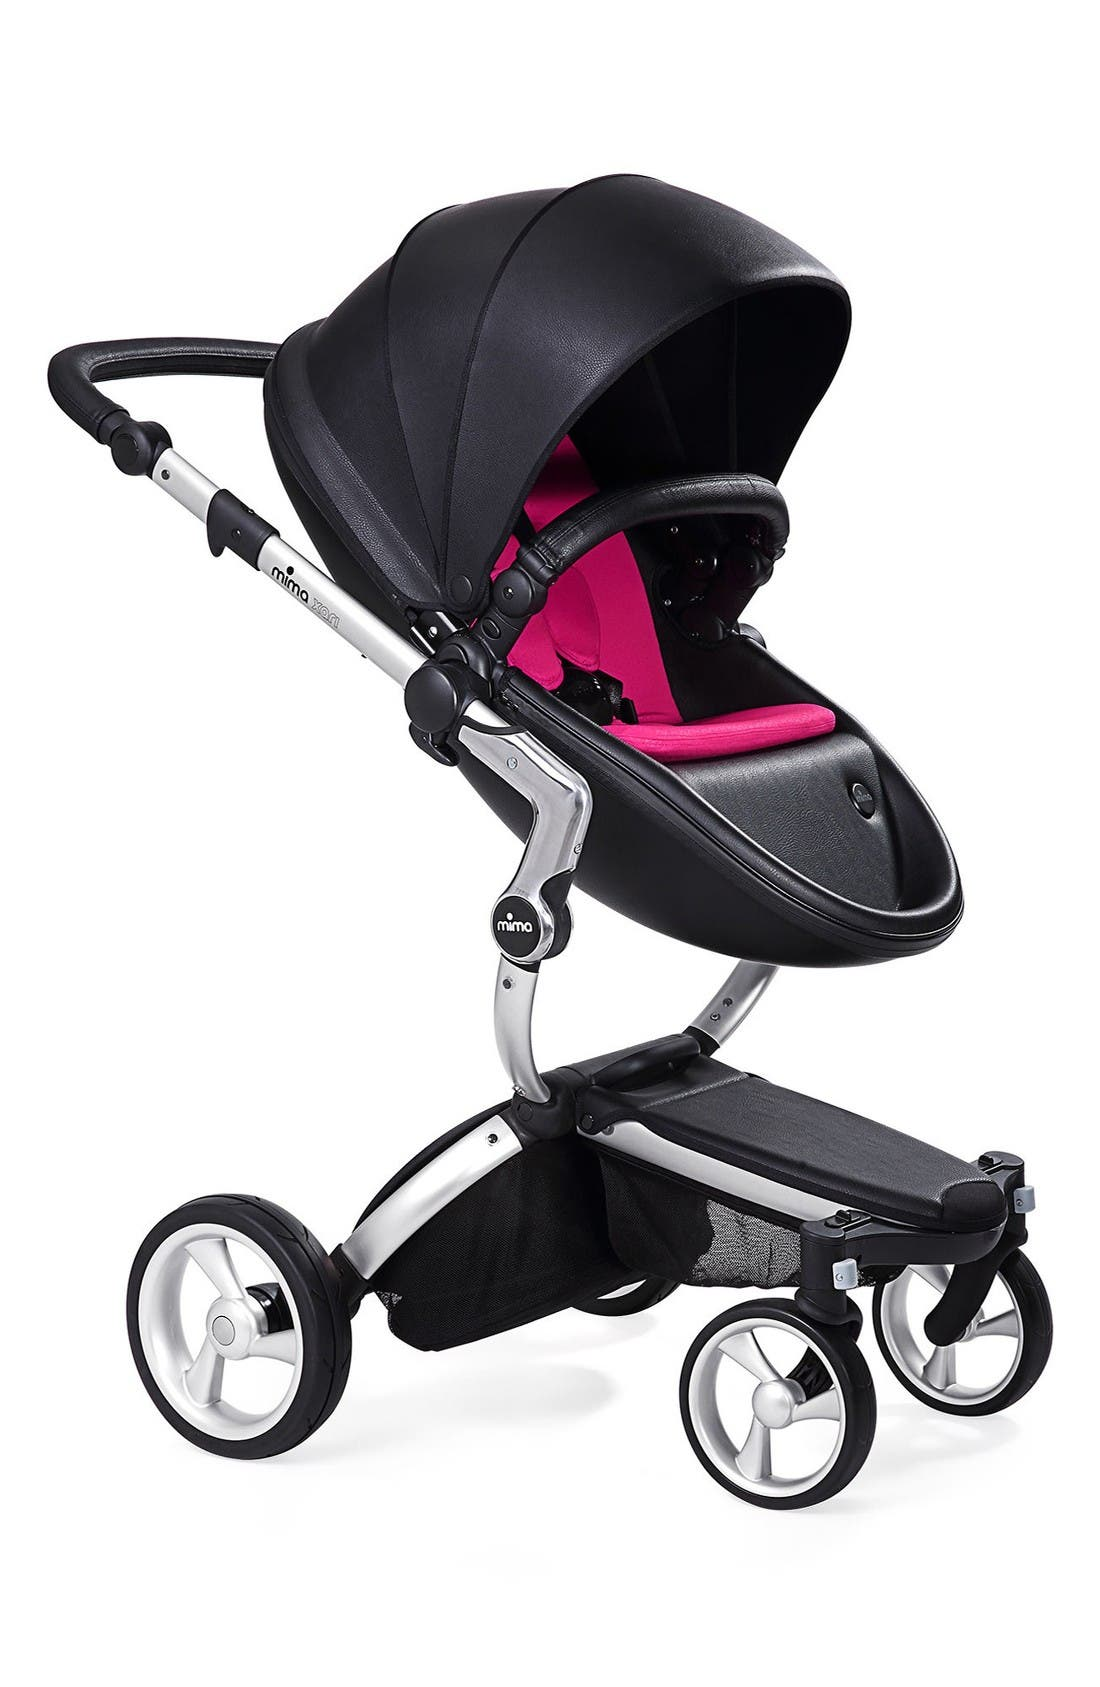 Mima Xari Aluminum Chassis Stroller with Reversible Reclining Seat & Carrycot